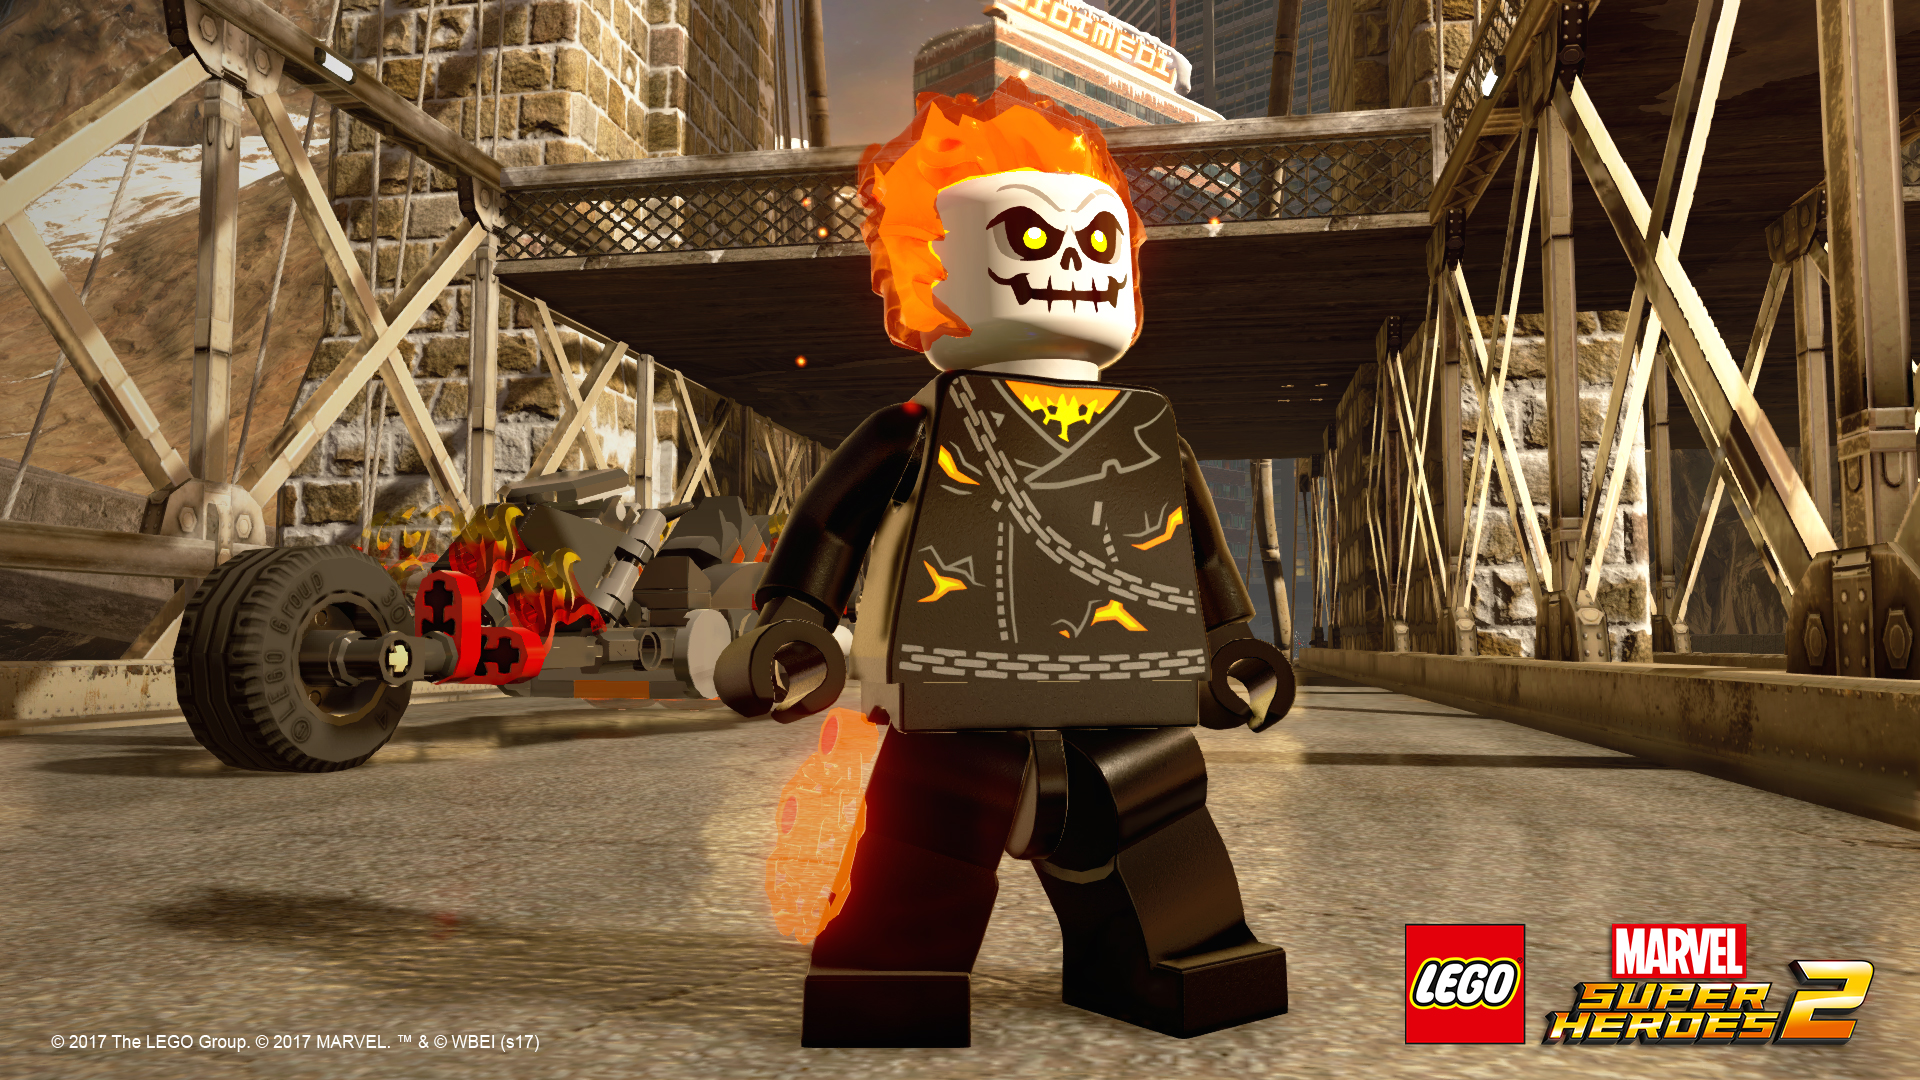 LEGO_Marvel_Super_Heroes_2_-_Ghost_Rider_1507794991